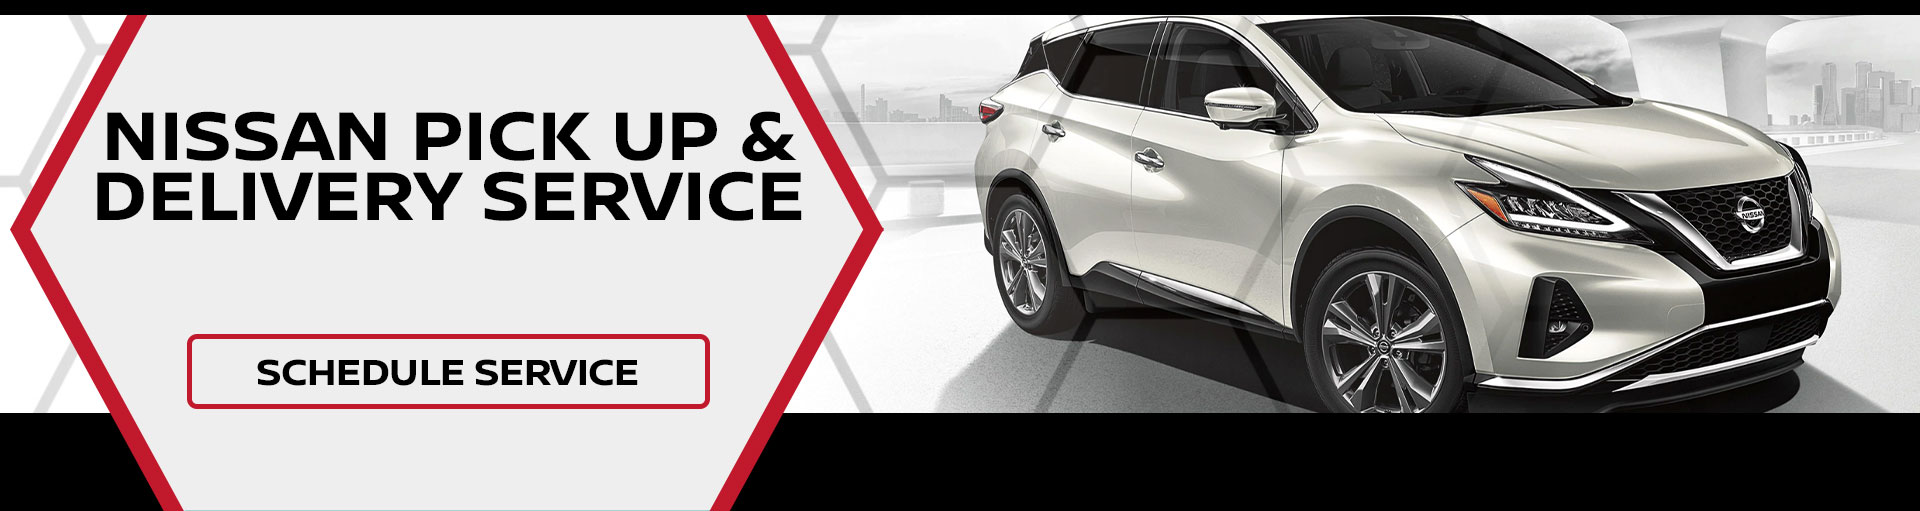 Garden Grove Nissan Pick Up & Delivery Service